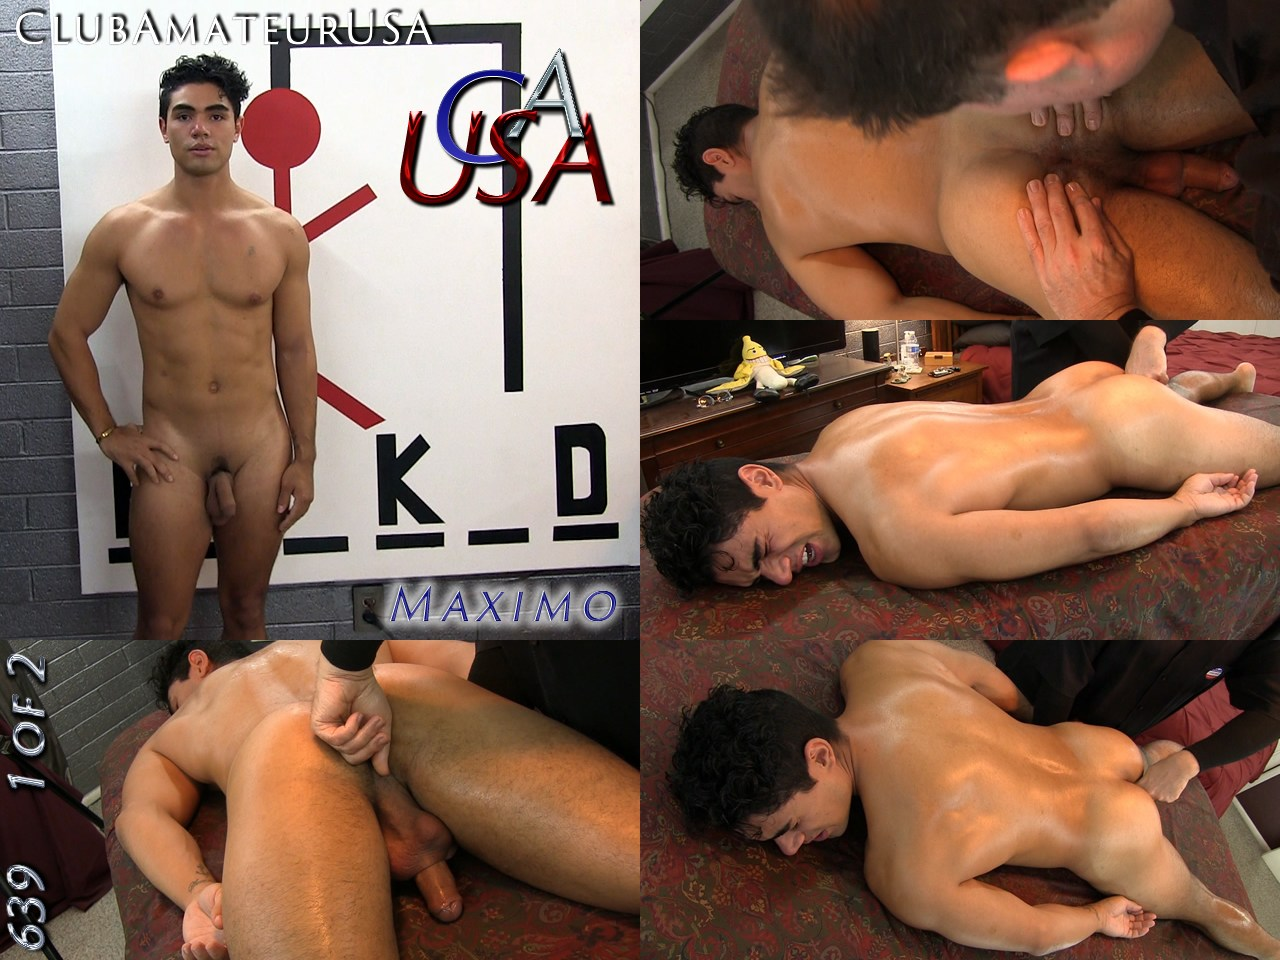 Download or Stream CAUSA 639 Maximo - 1 of 2 - Click Here Now